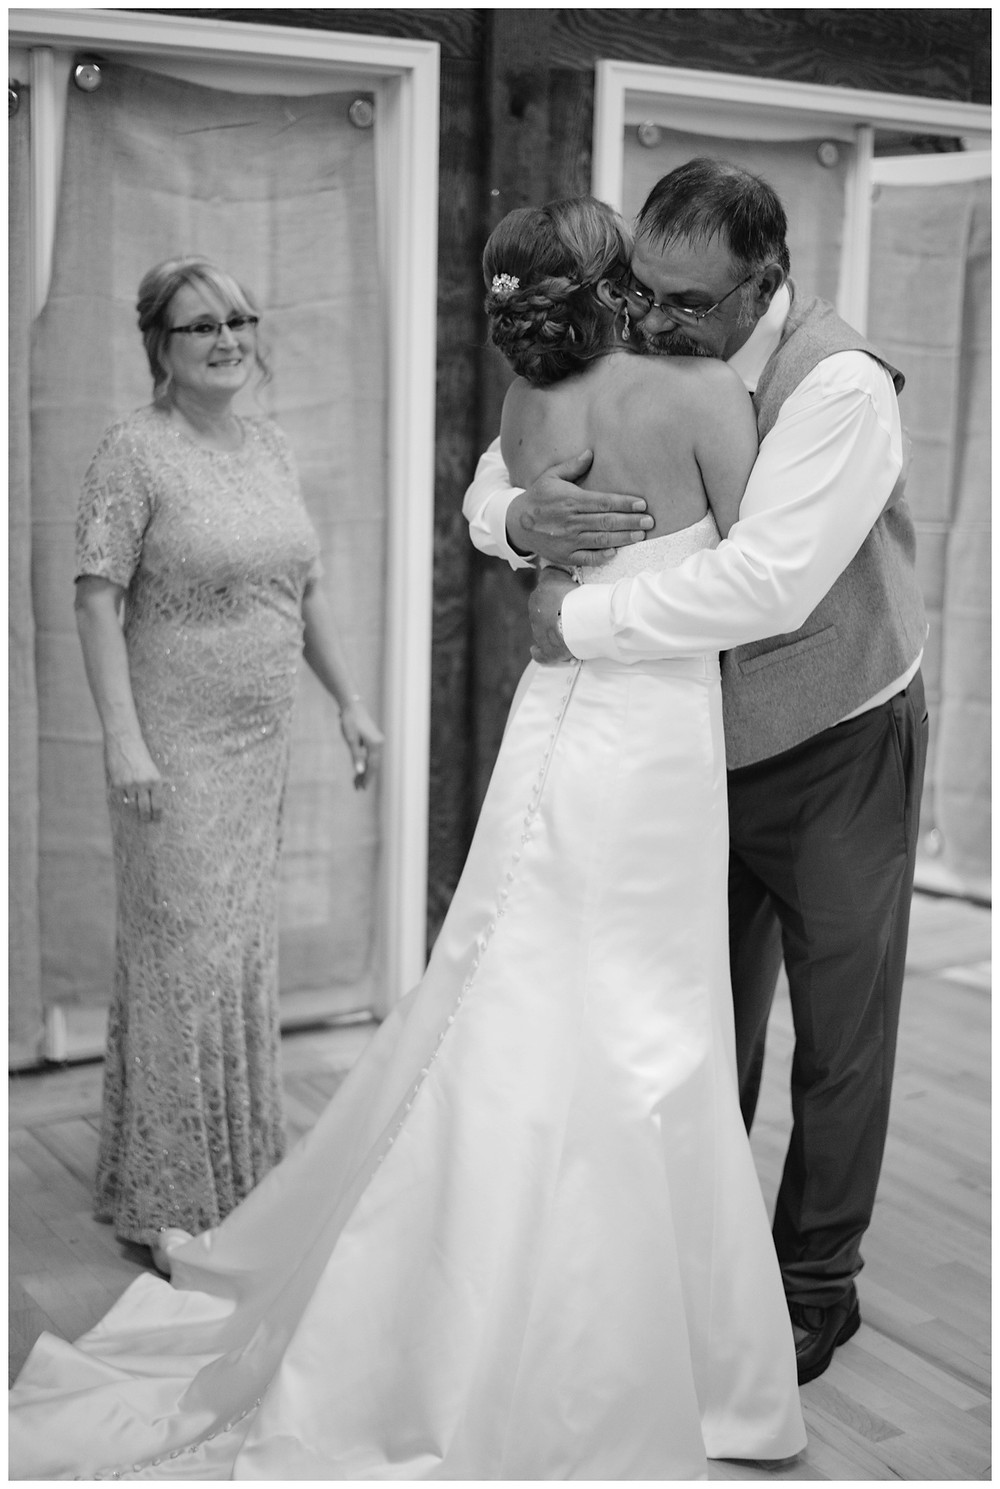 father-and-bride-first-look-at-brighton-acres-wedding-by-appleton-wedding-photographer-kyra-rane-photography